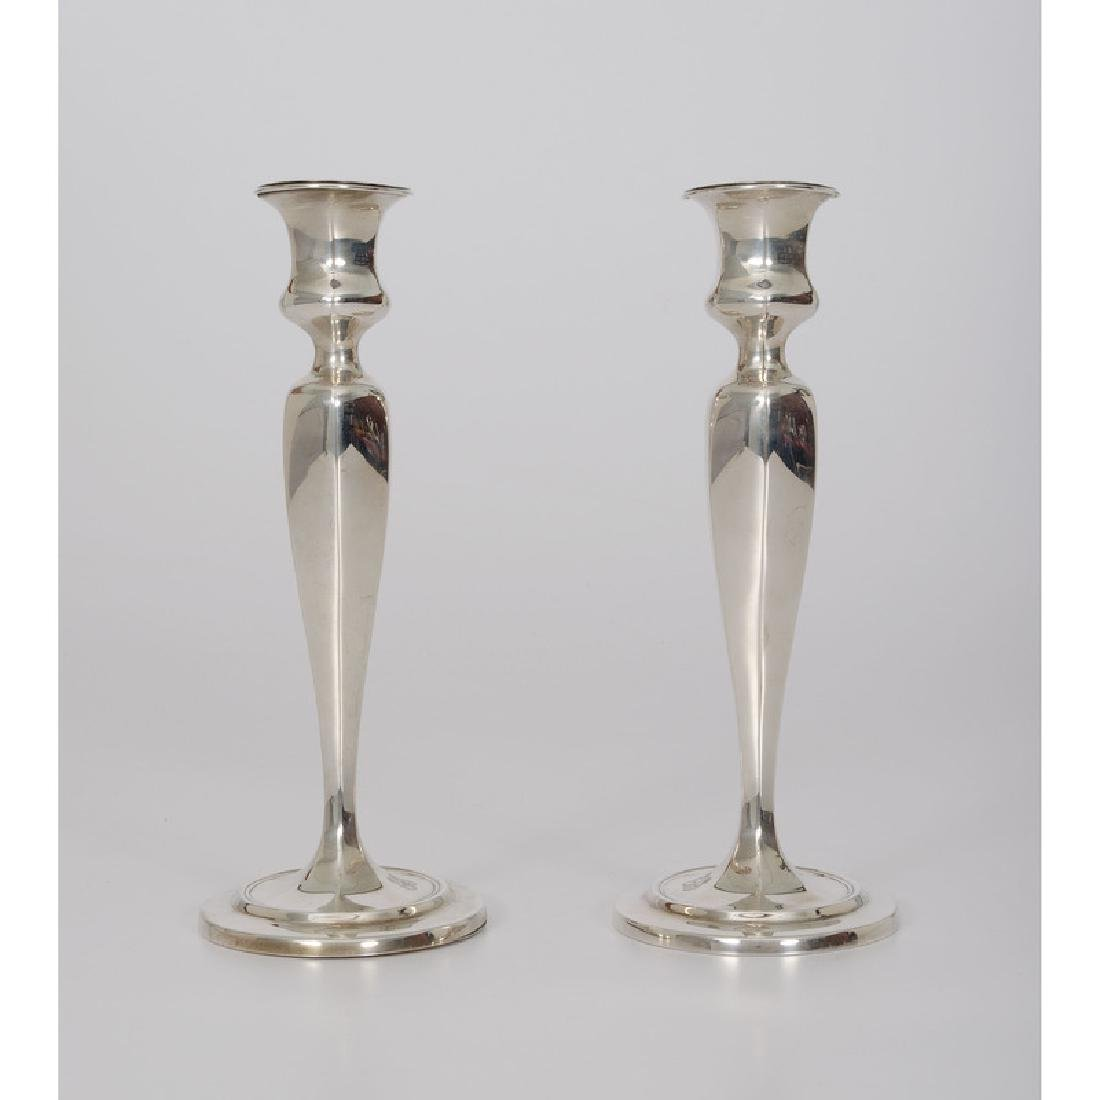 Tiffany & Co.  Sterling Weighted Candlesticks - 2